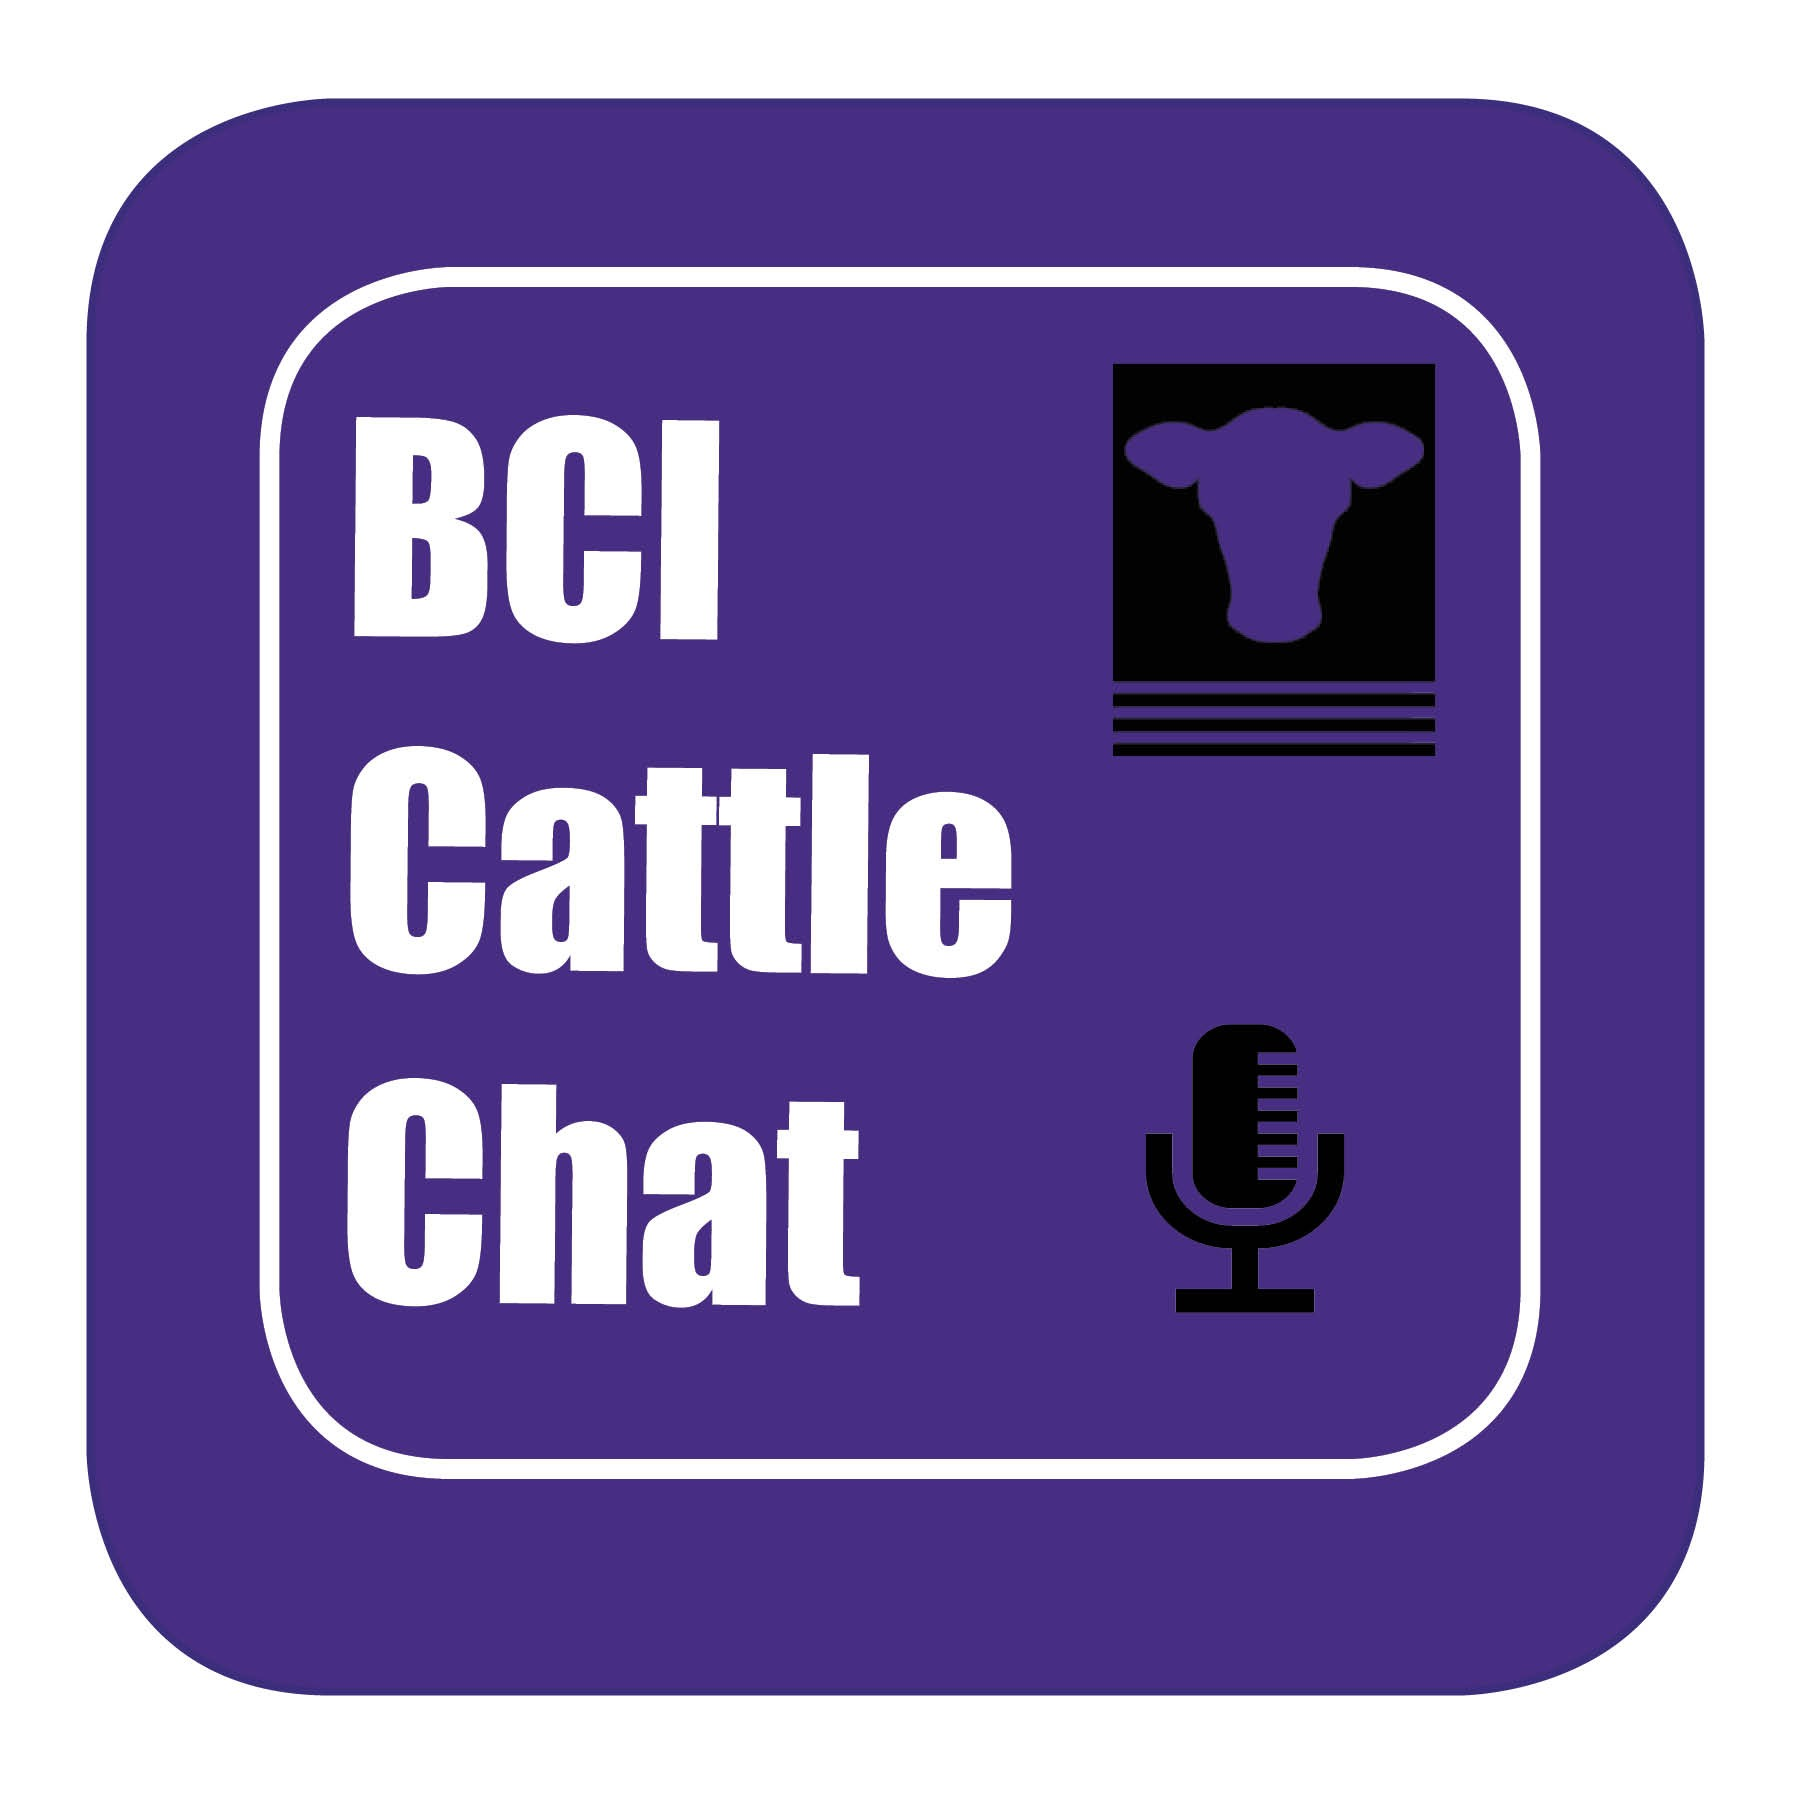 BCI Cattle Chat - Episode 41